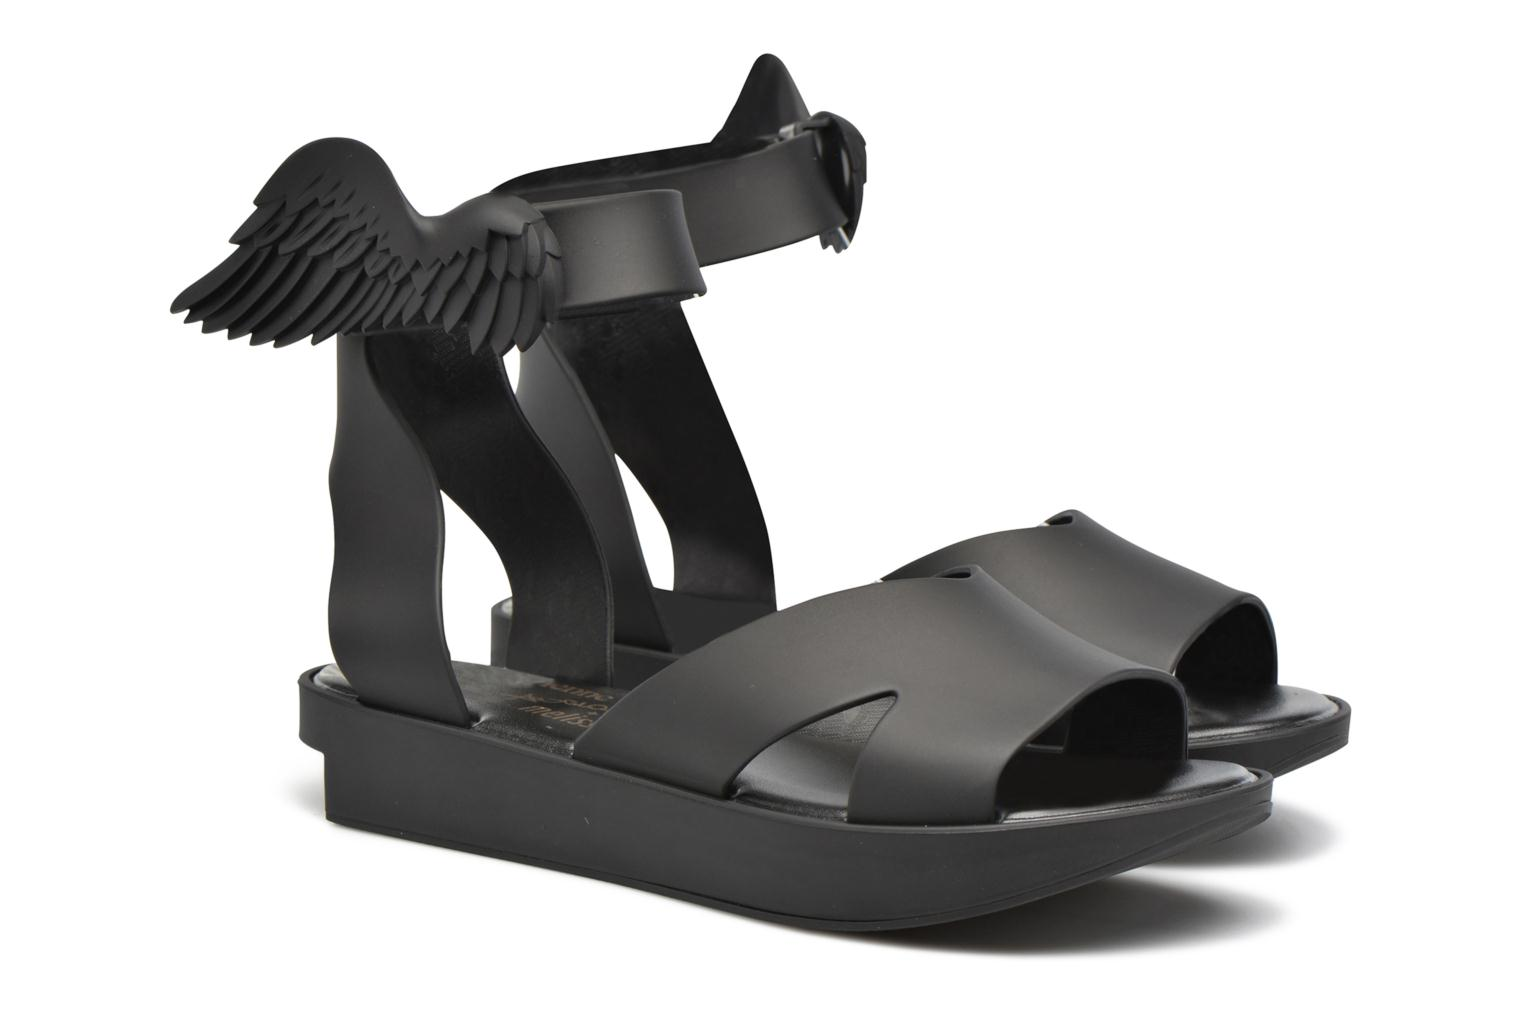 Melissa x Vivienne Westwood - Anglomania Rocking Horse Black